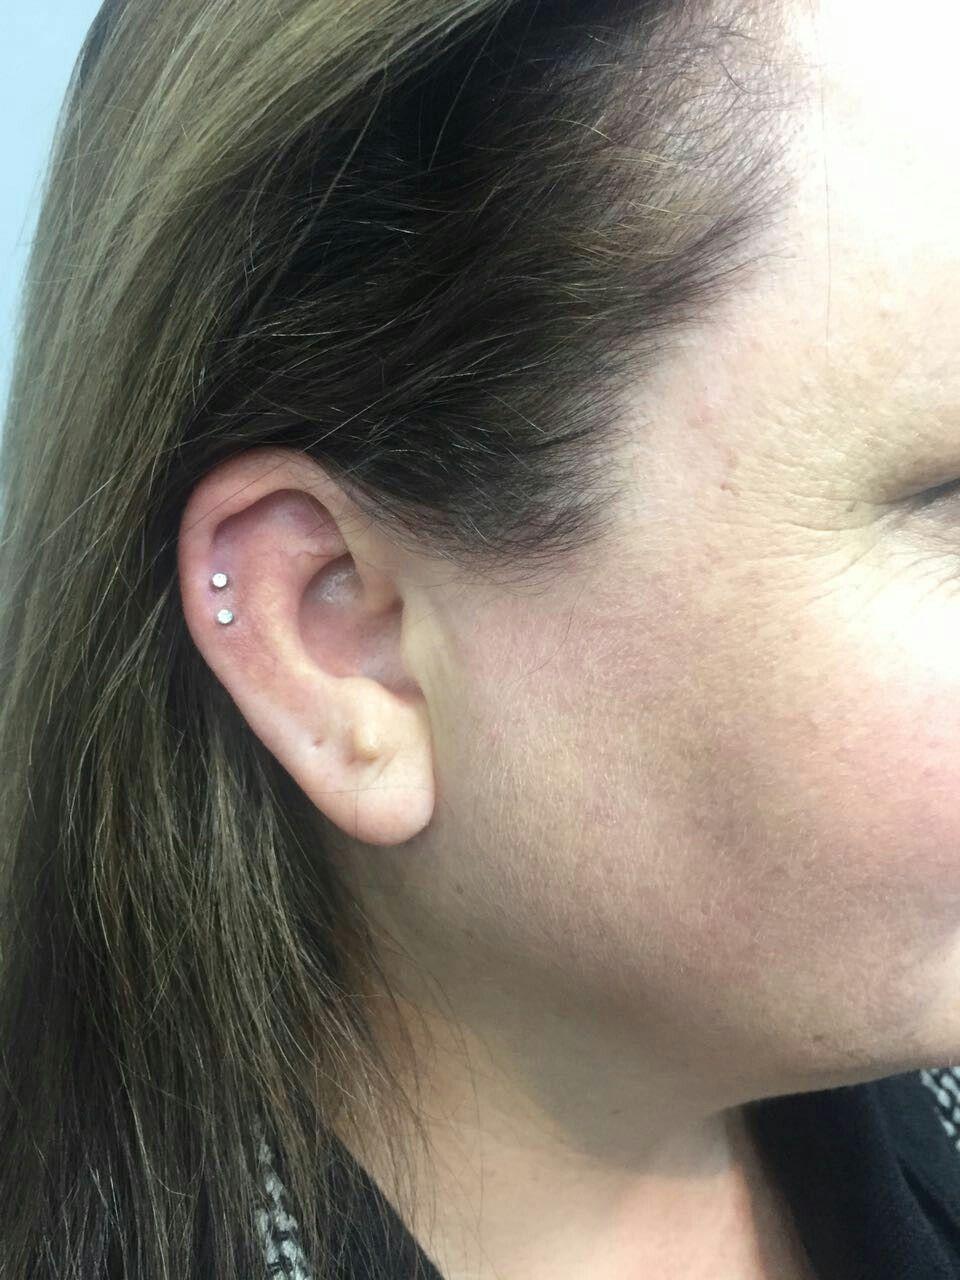 Nose piercing hole scar  Pin by Caitlin Cox on Peircings  Pinterest  Peircings